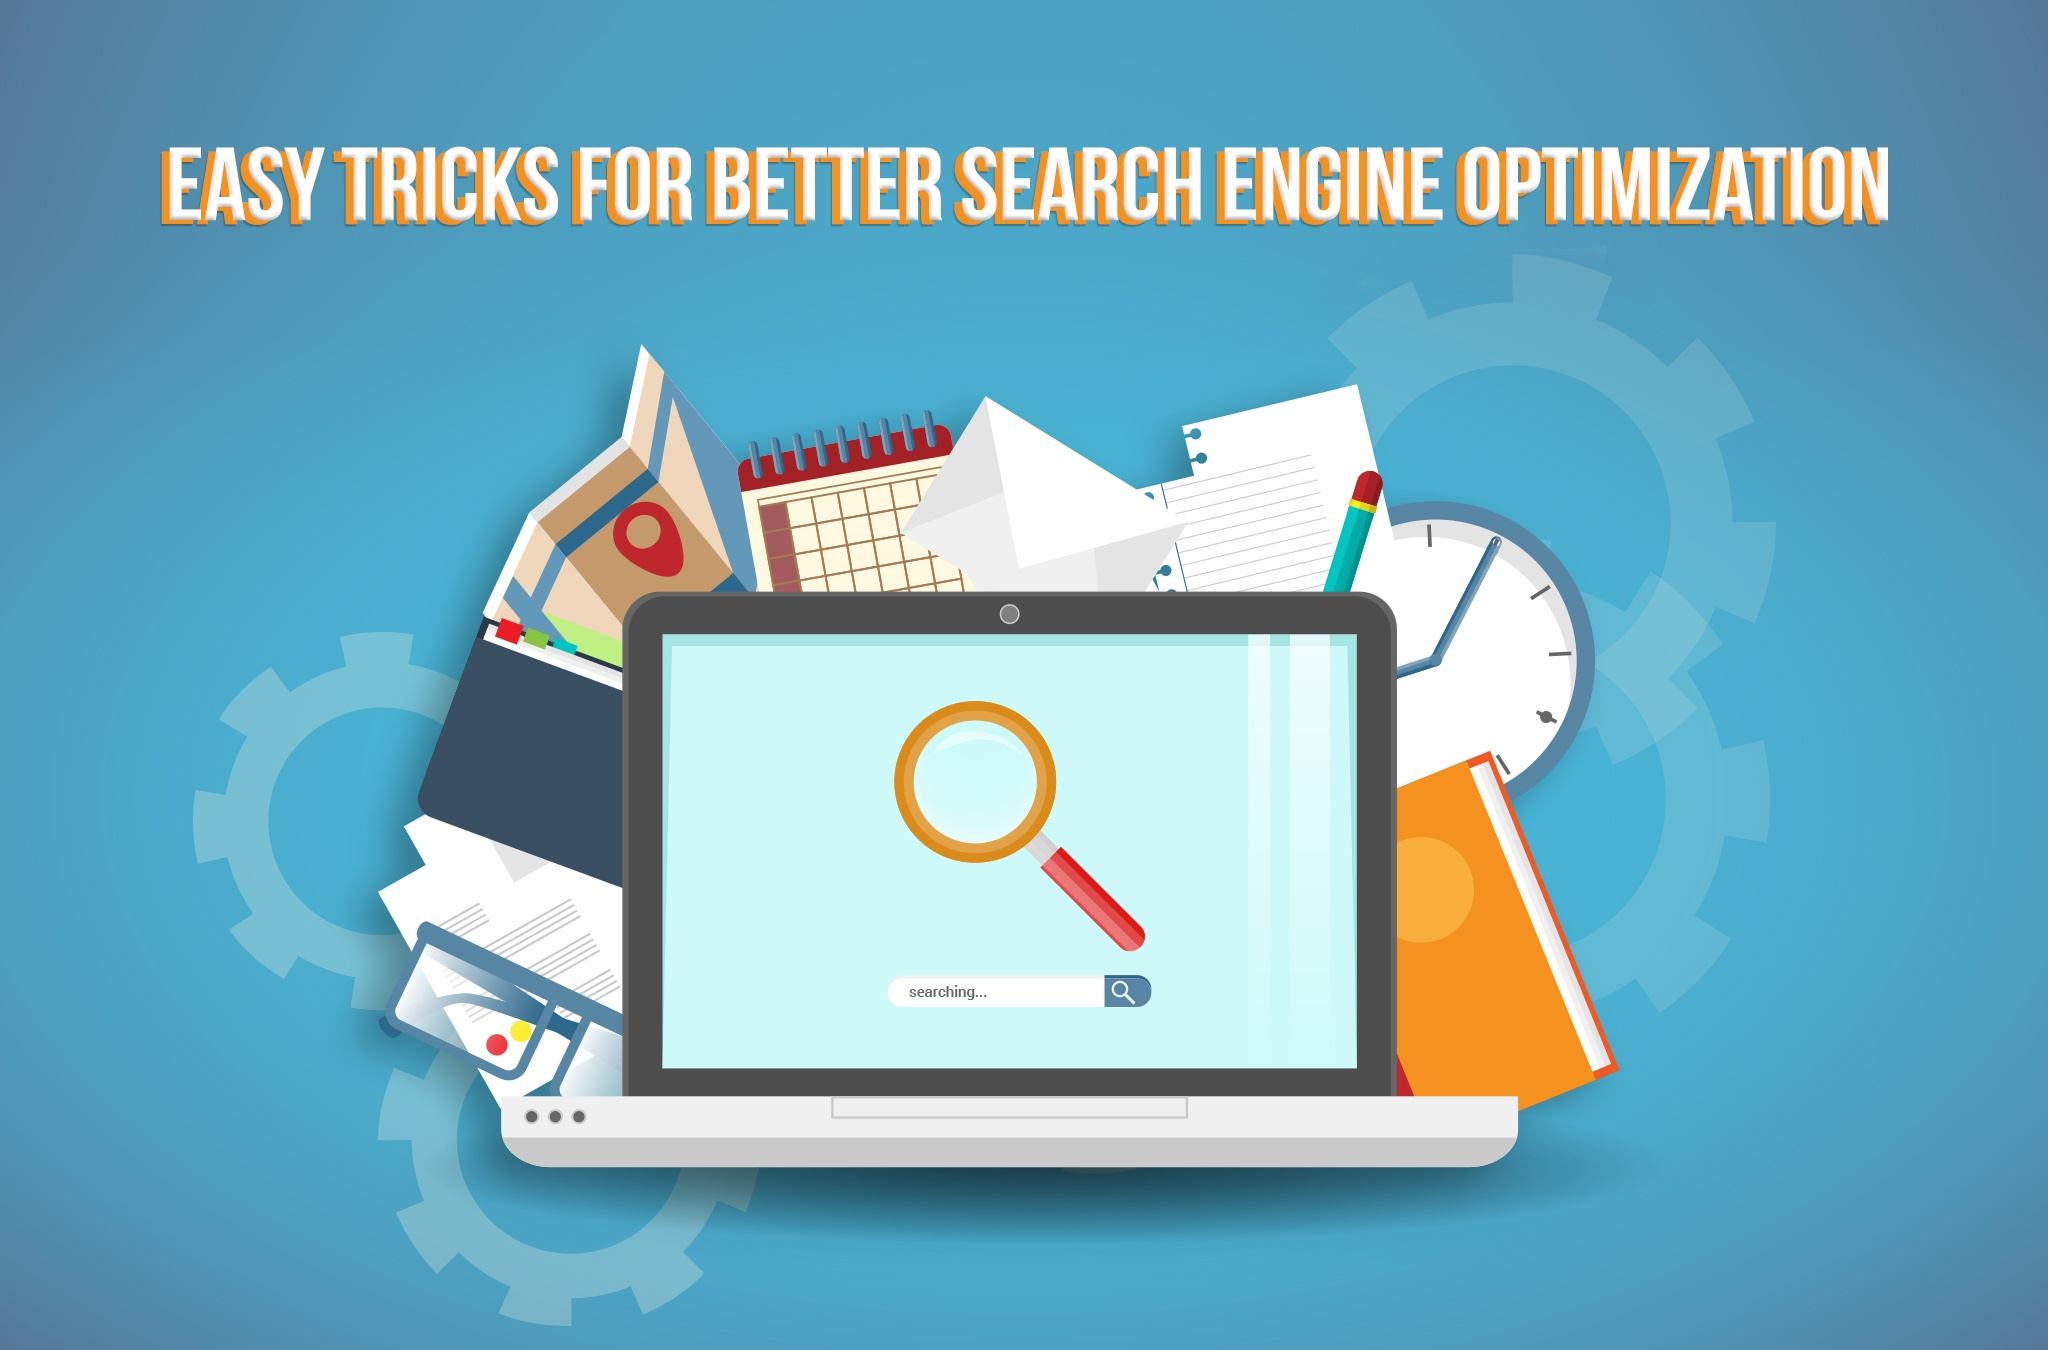 Easy Tricks for Better Search Engine Optimization